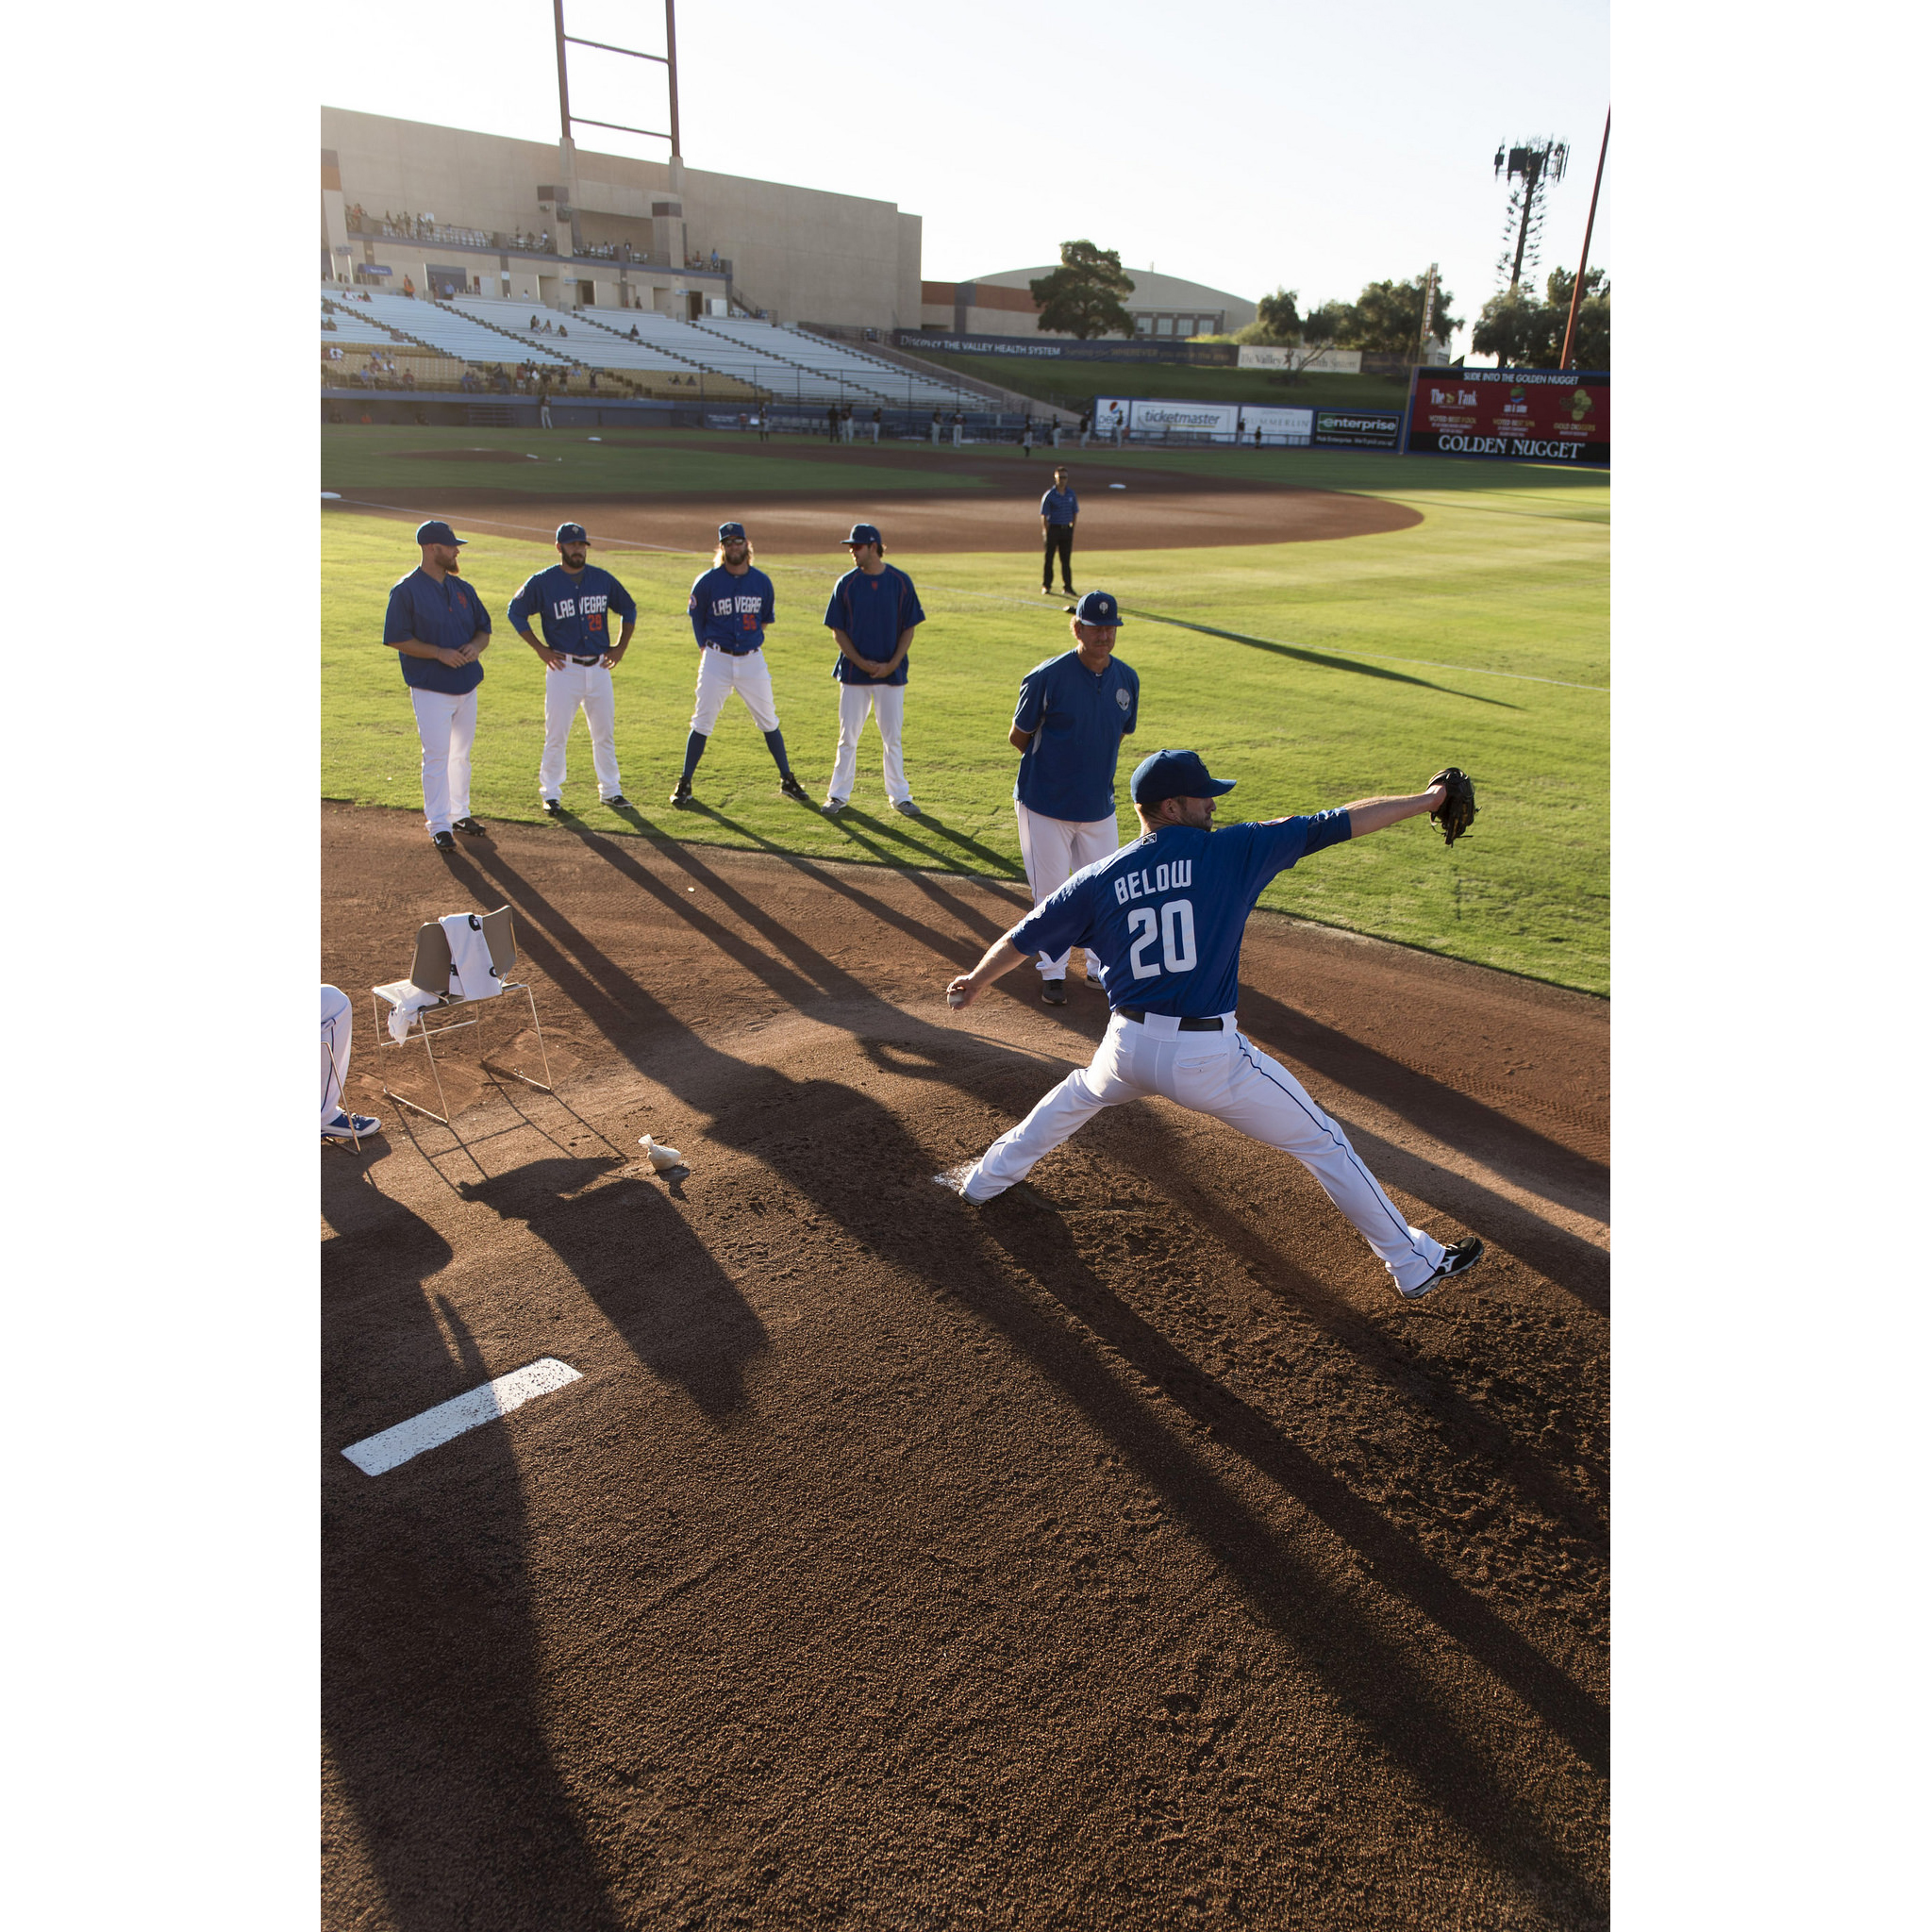 Las Vegas 51s pitcher Duane Below (20) warms up prior to a game against the Albuquerque Isotopes during the final day of his five day pitching cycle at Cashman Field in Las Vegas, Thursday, July 7, 2016. Jason Ogulnik/Las Vegas Review-Journal